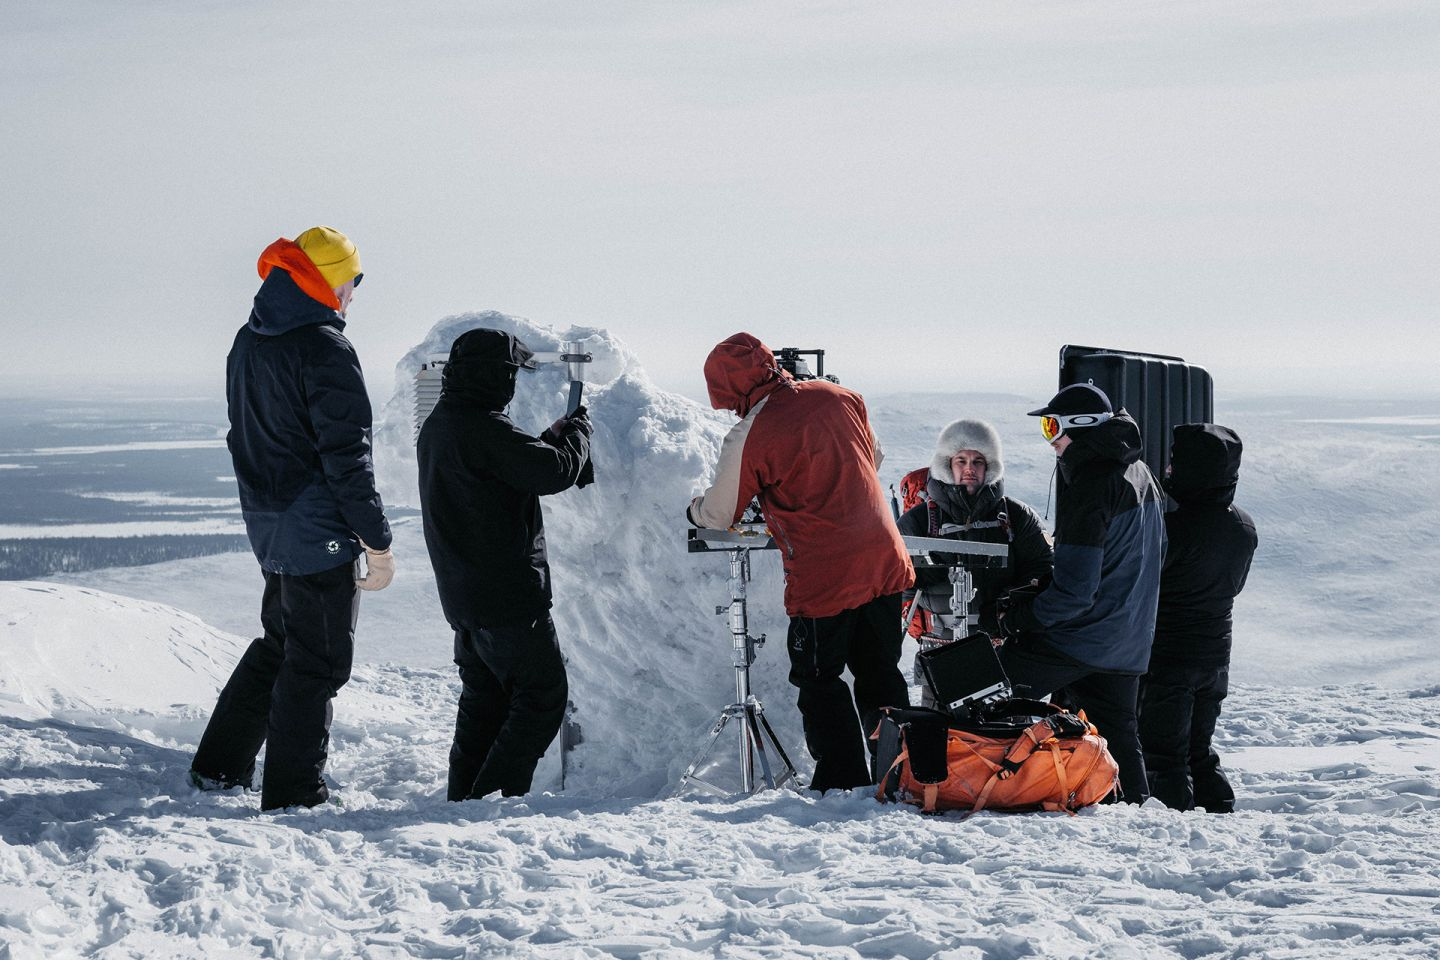 Filming in Arctic conditions